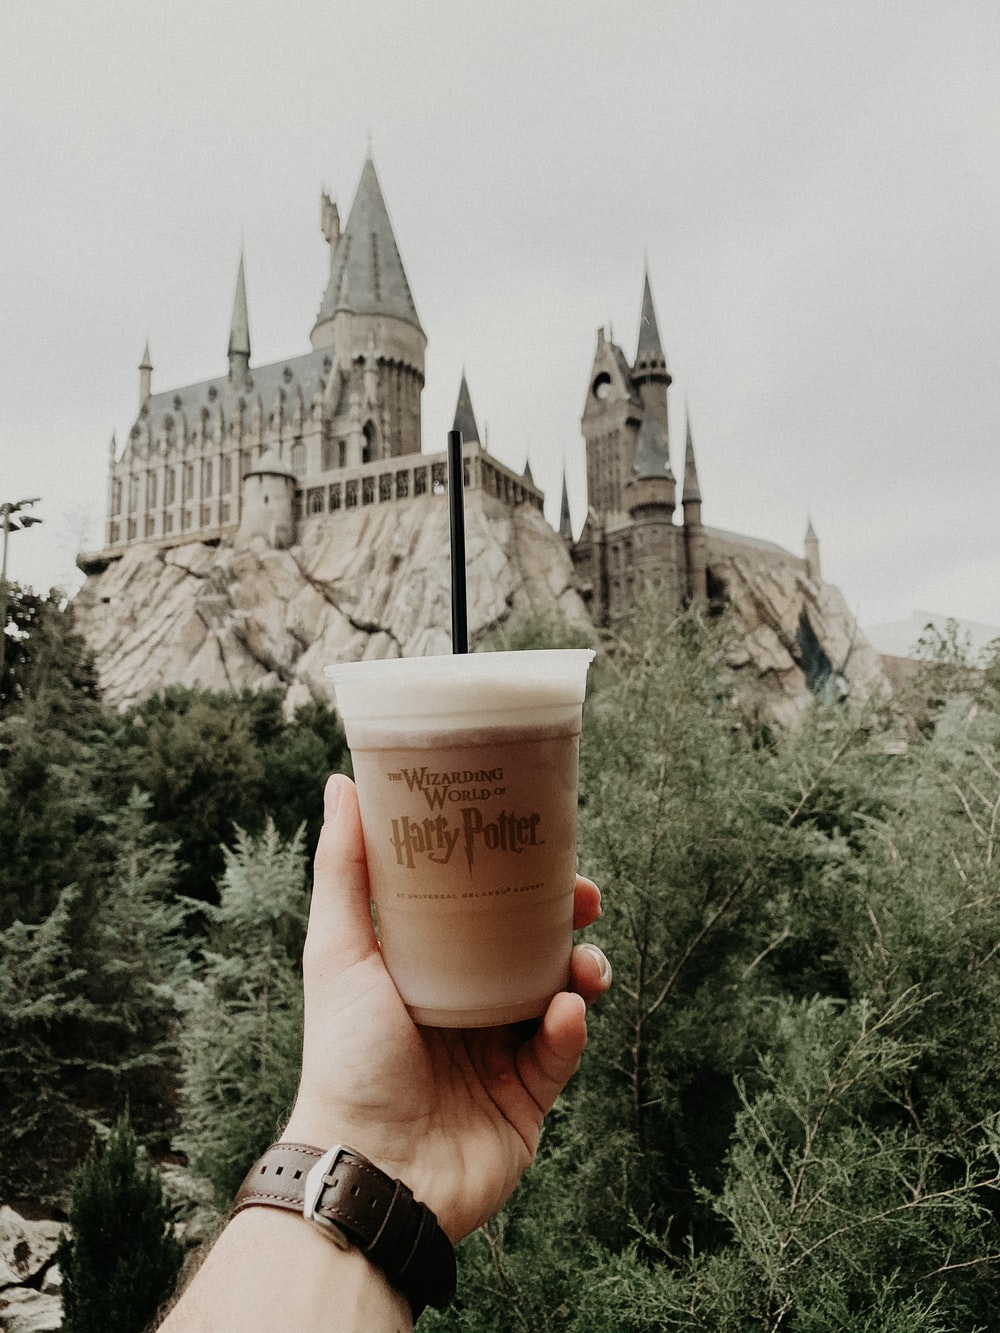 person holding Harry Potter drink cup in front of castle